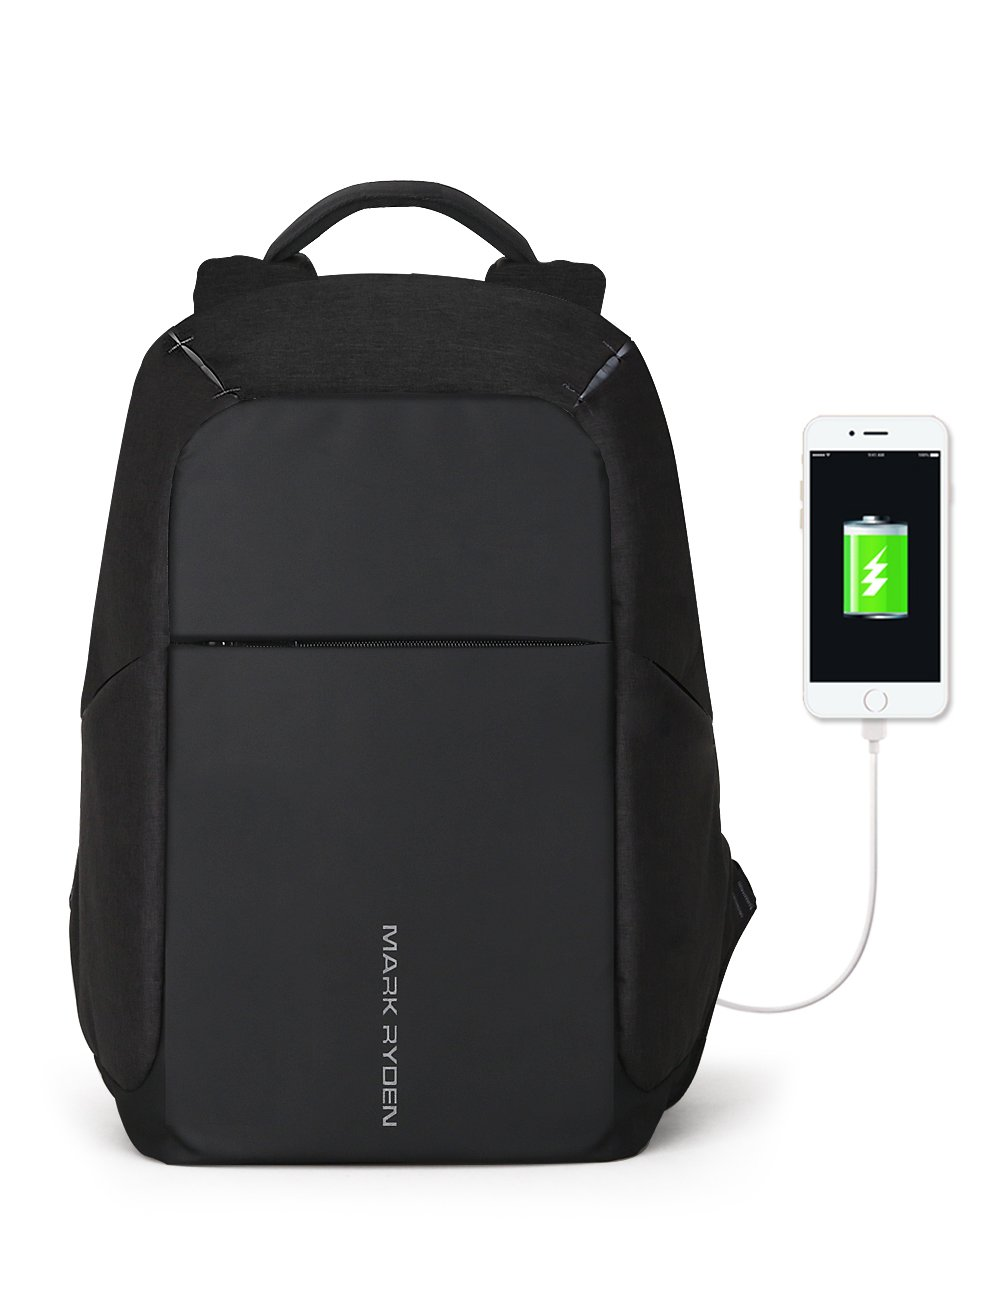 eea1a143cd9d Amazon.com  Markryden Anti-theft Laptop Backpack Business Bags with USB  Charging Port School Travel Pack Fits Under 15.6 Inch Laptop (Black 2.1)   Markryden